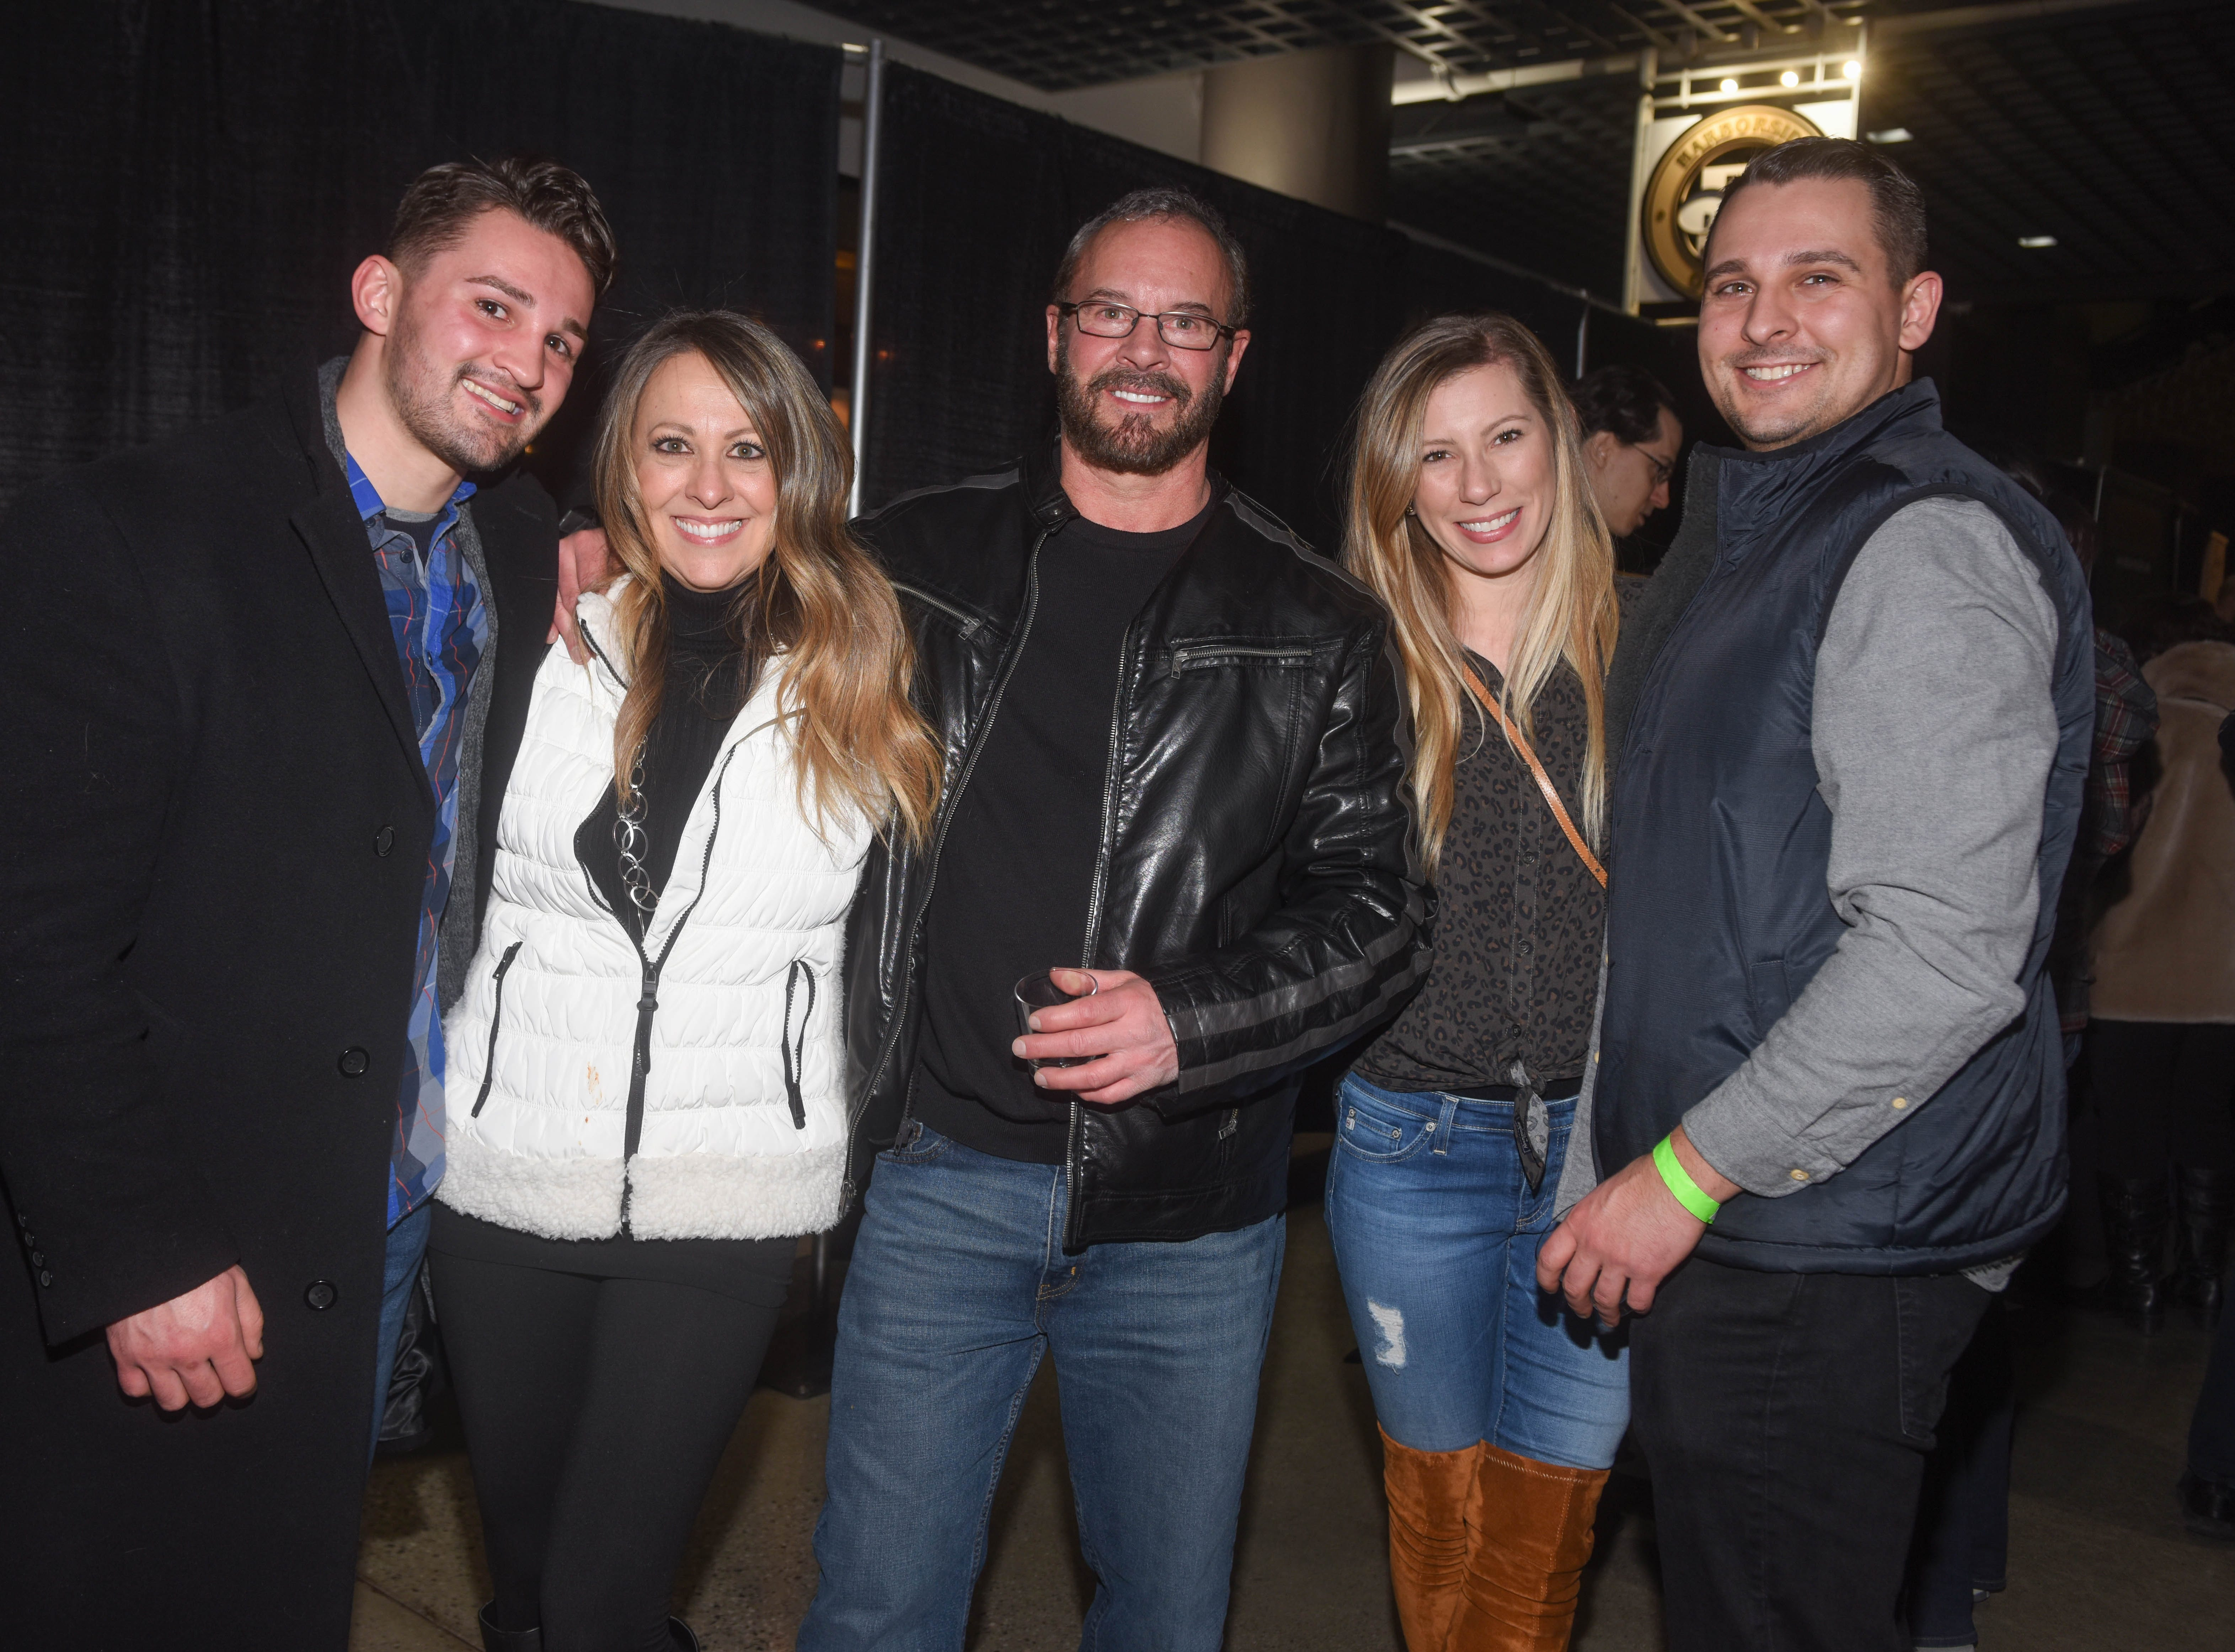 Gregg, Cheryl, Gregg Sr., Carla and Vincent. Jersey City Whiskey Fest was held at Harborside Atrium. The event featured over 100 styles of whiskey and spirits. 02/01/2019